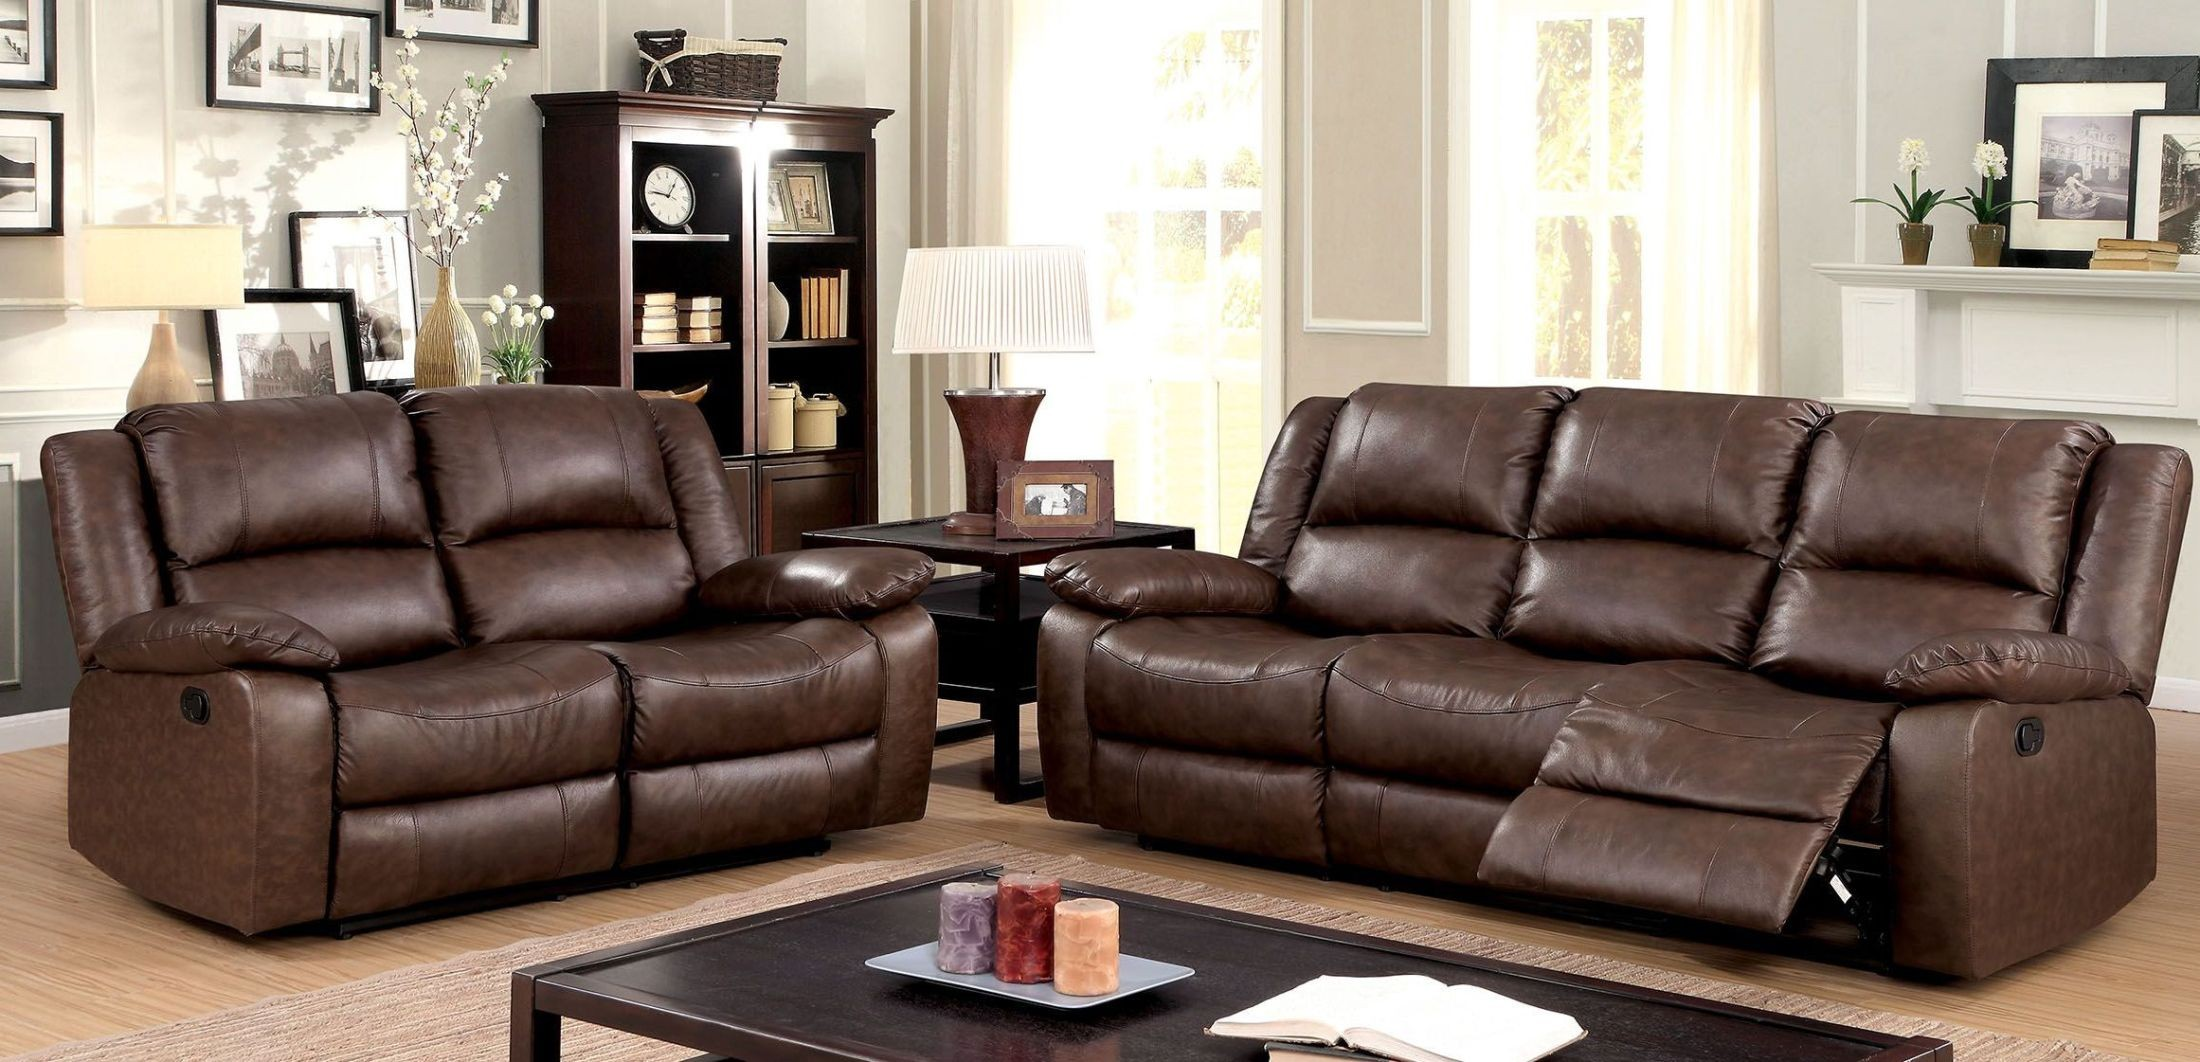 Sofa Set Offer Up Kris Brown Sofa Reclining Living Room Set From Furniture